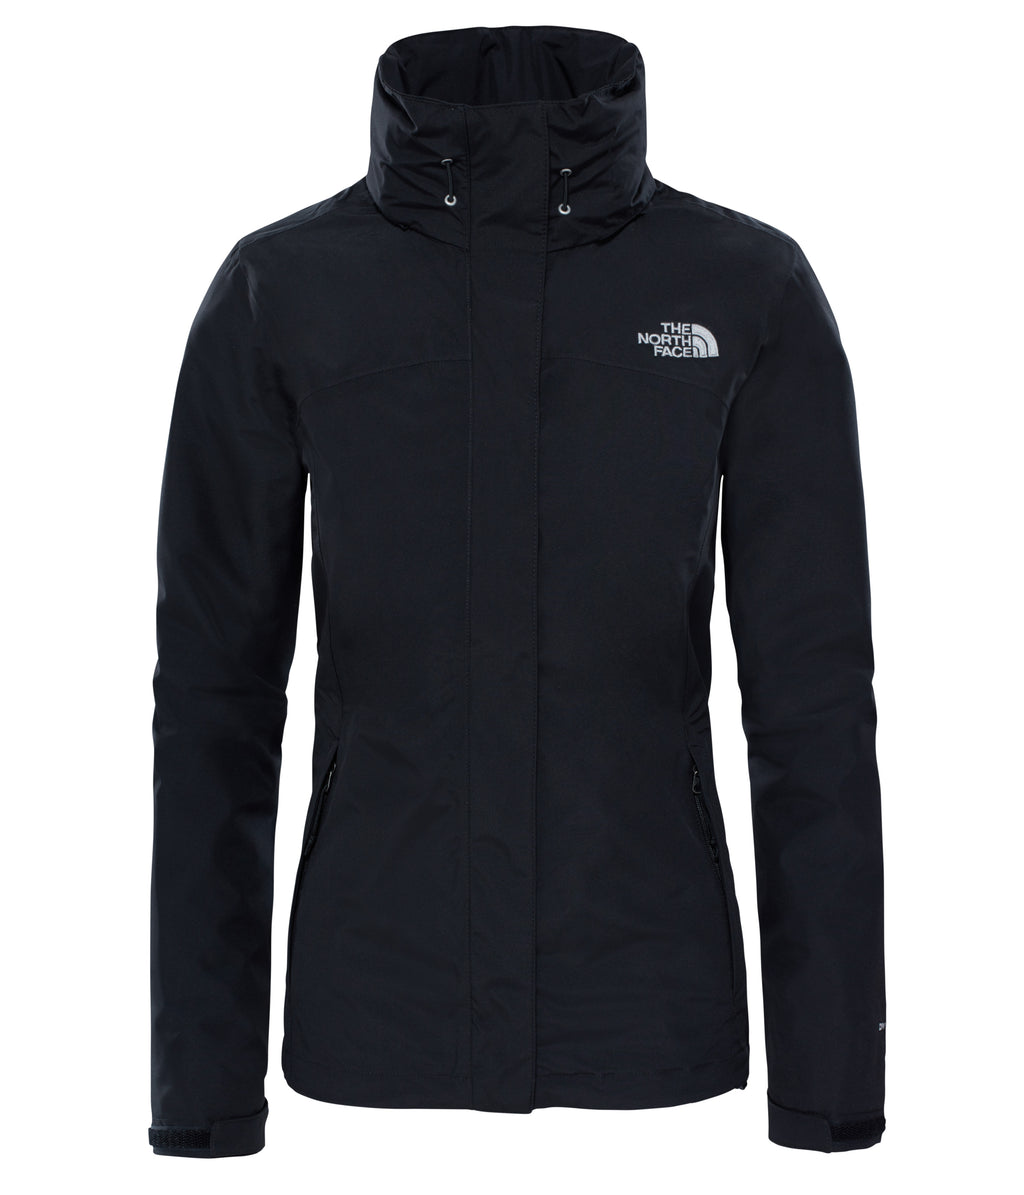 The North Face Women's Sangro promotional Jacket